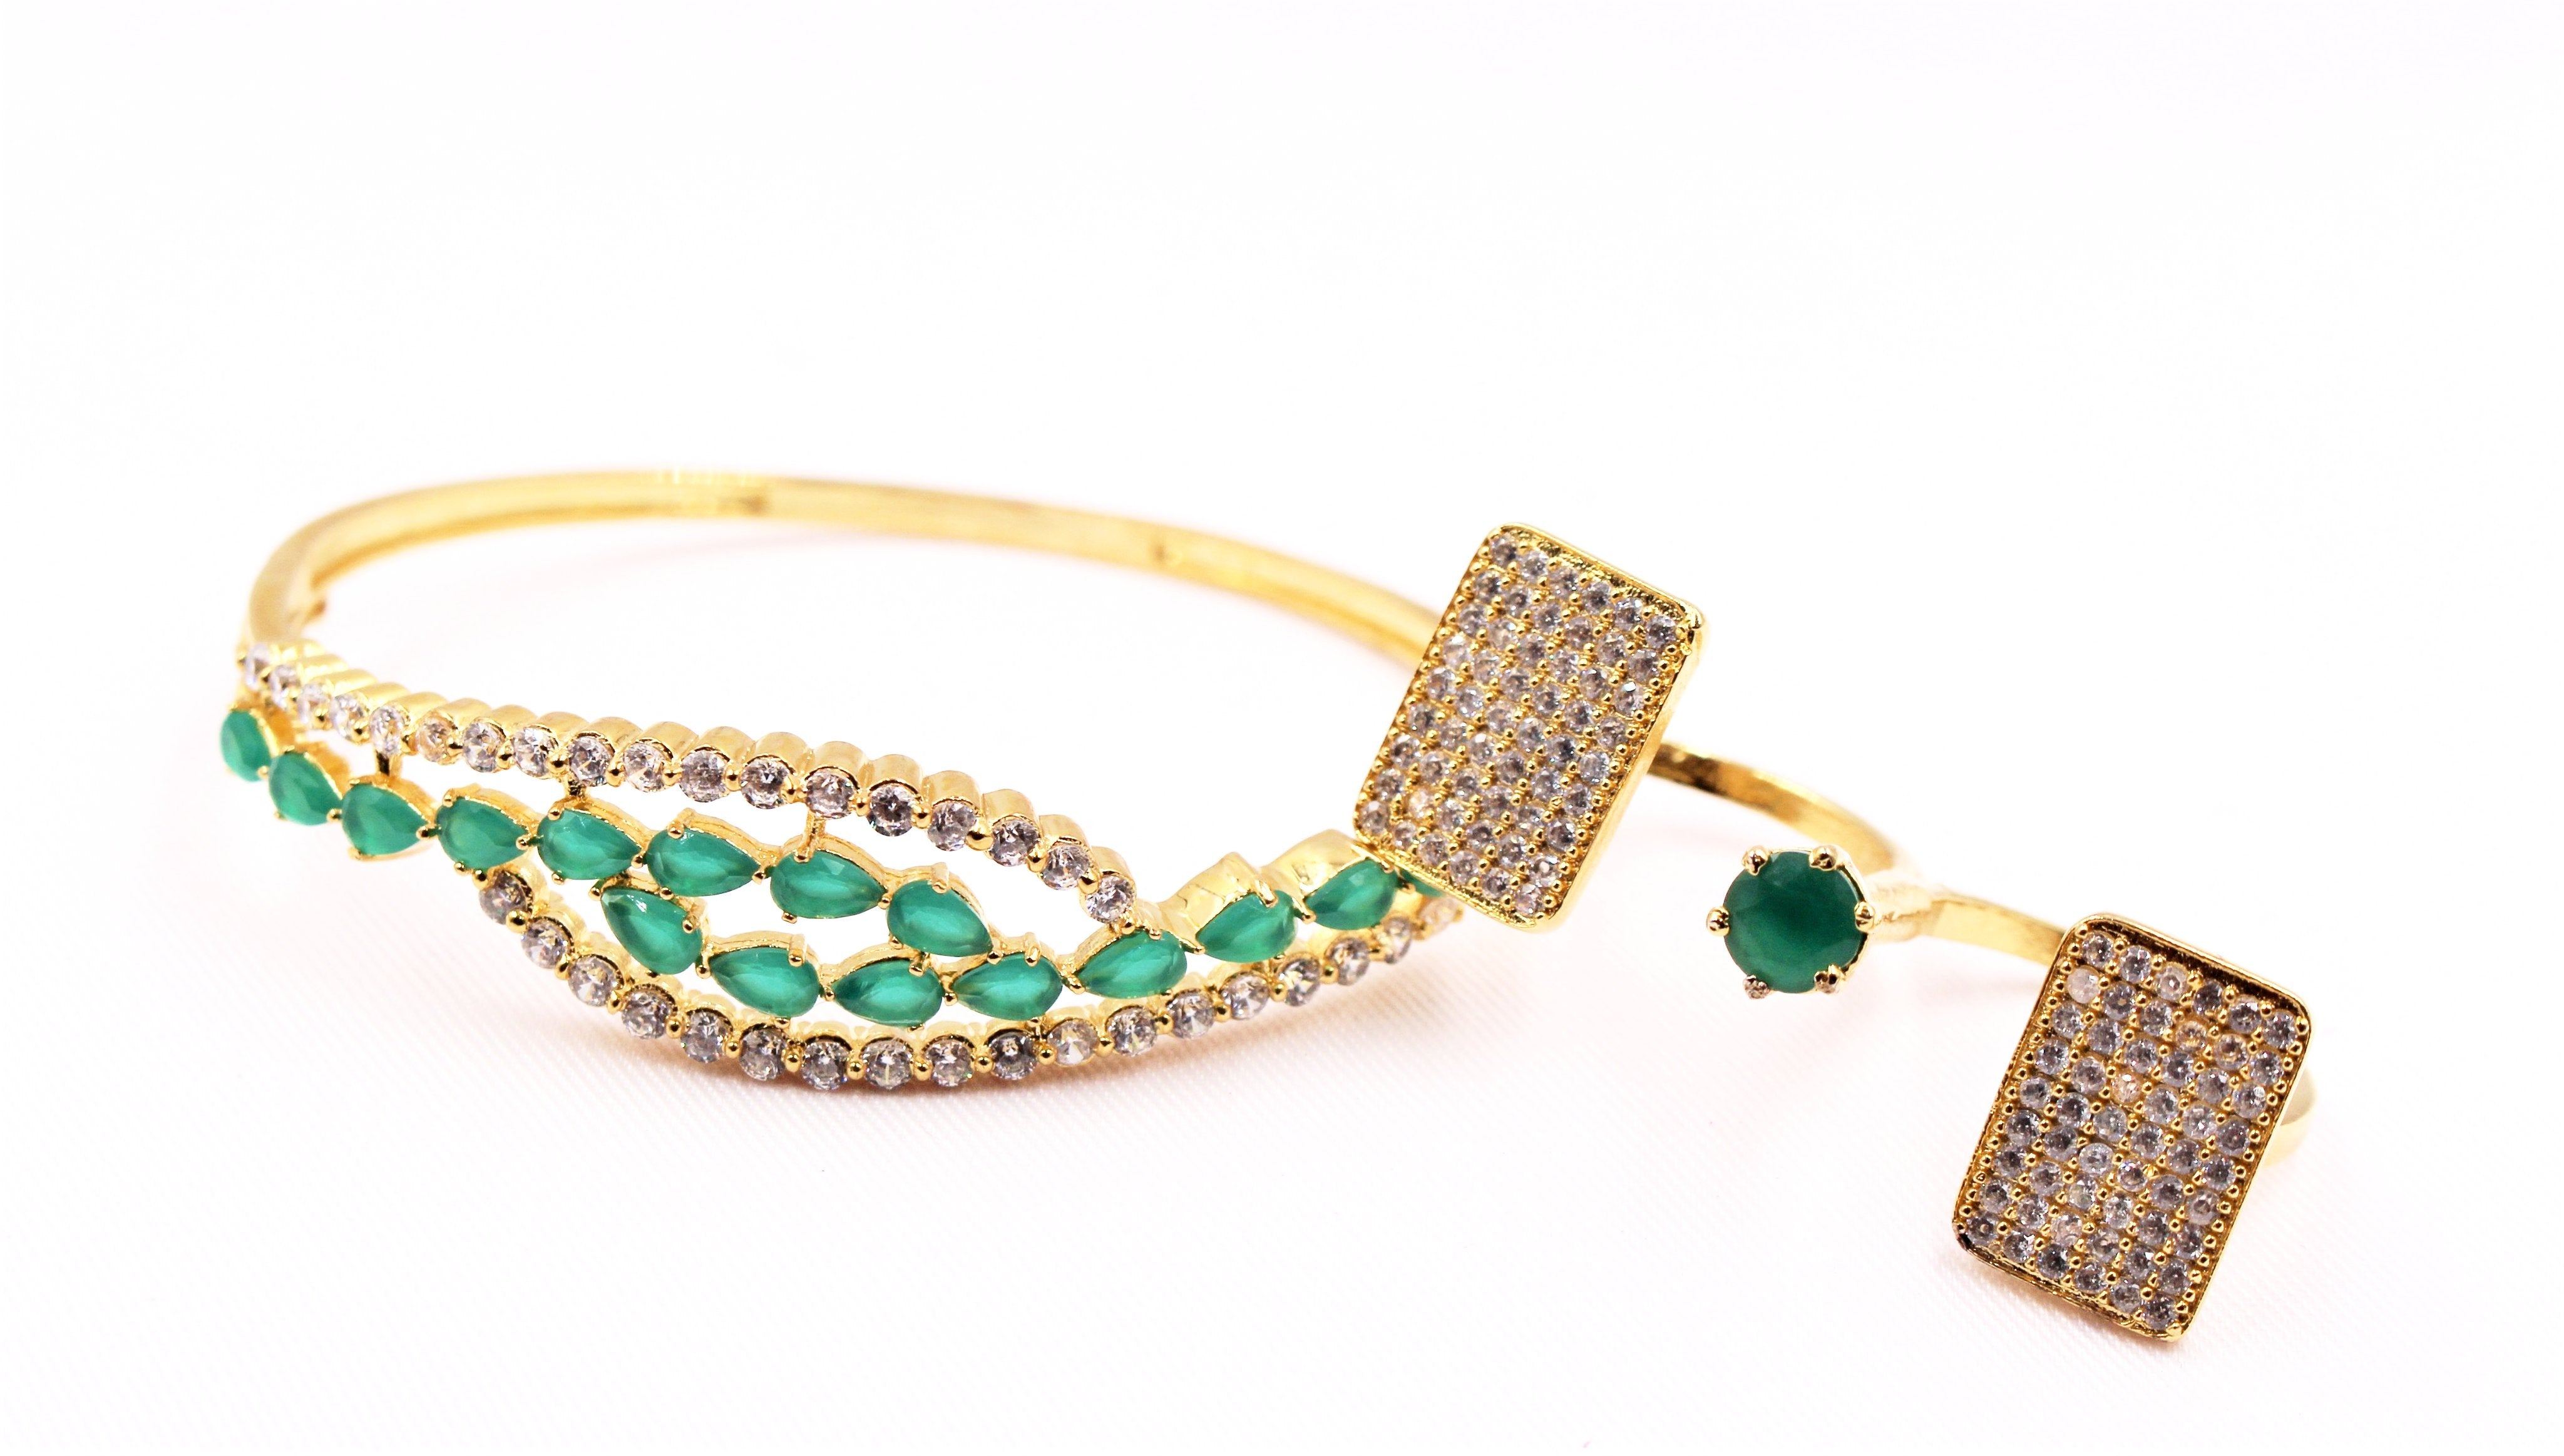 Emerald and Gold Plated Jewelry Duo - Bridges to Borders